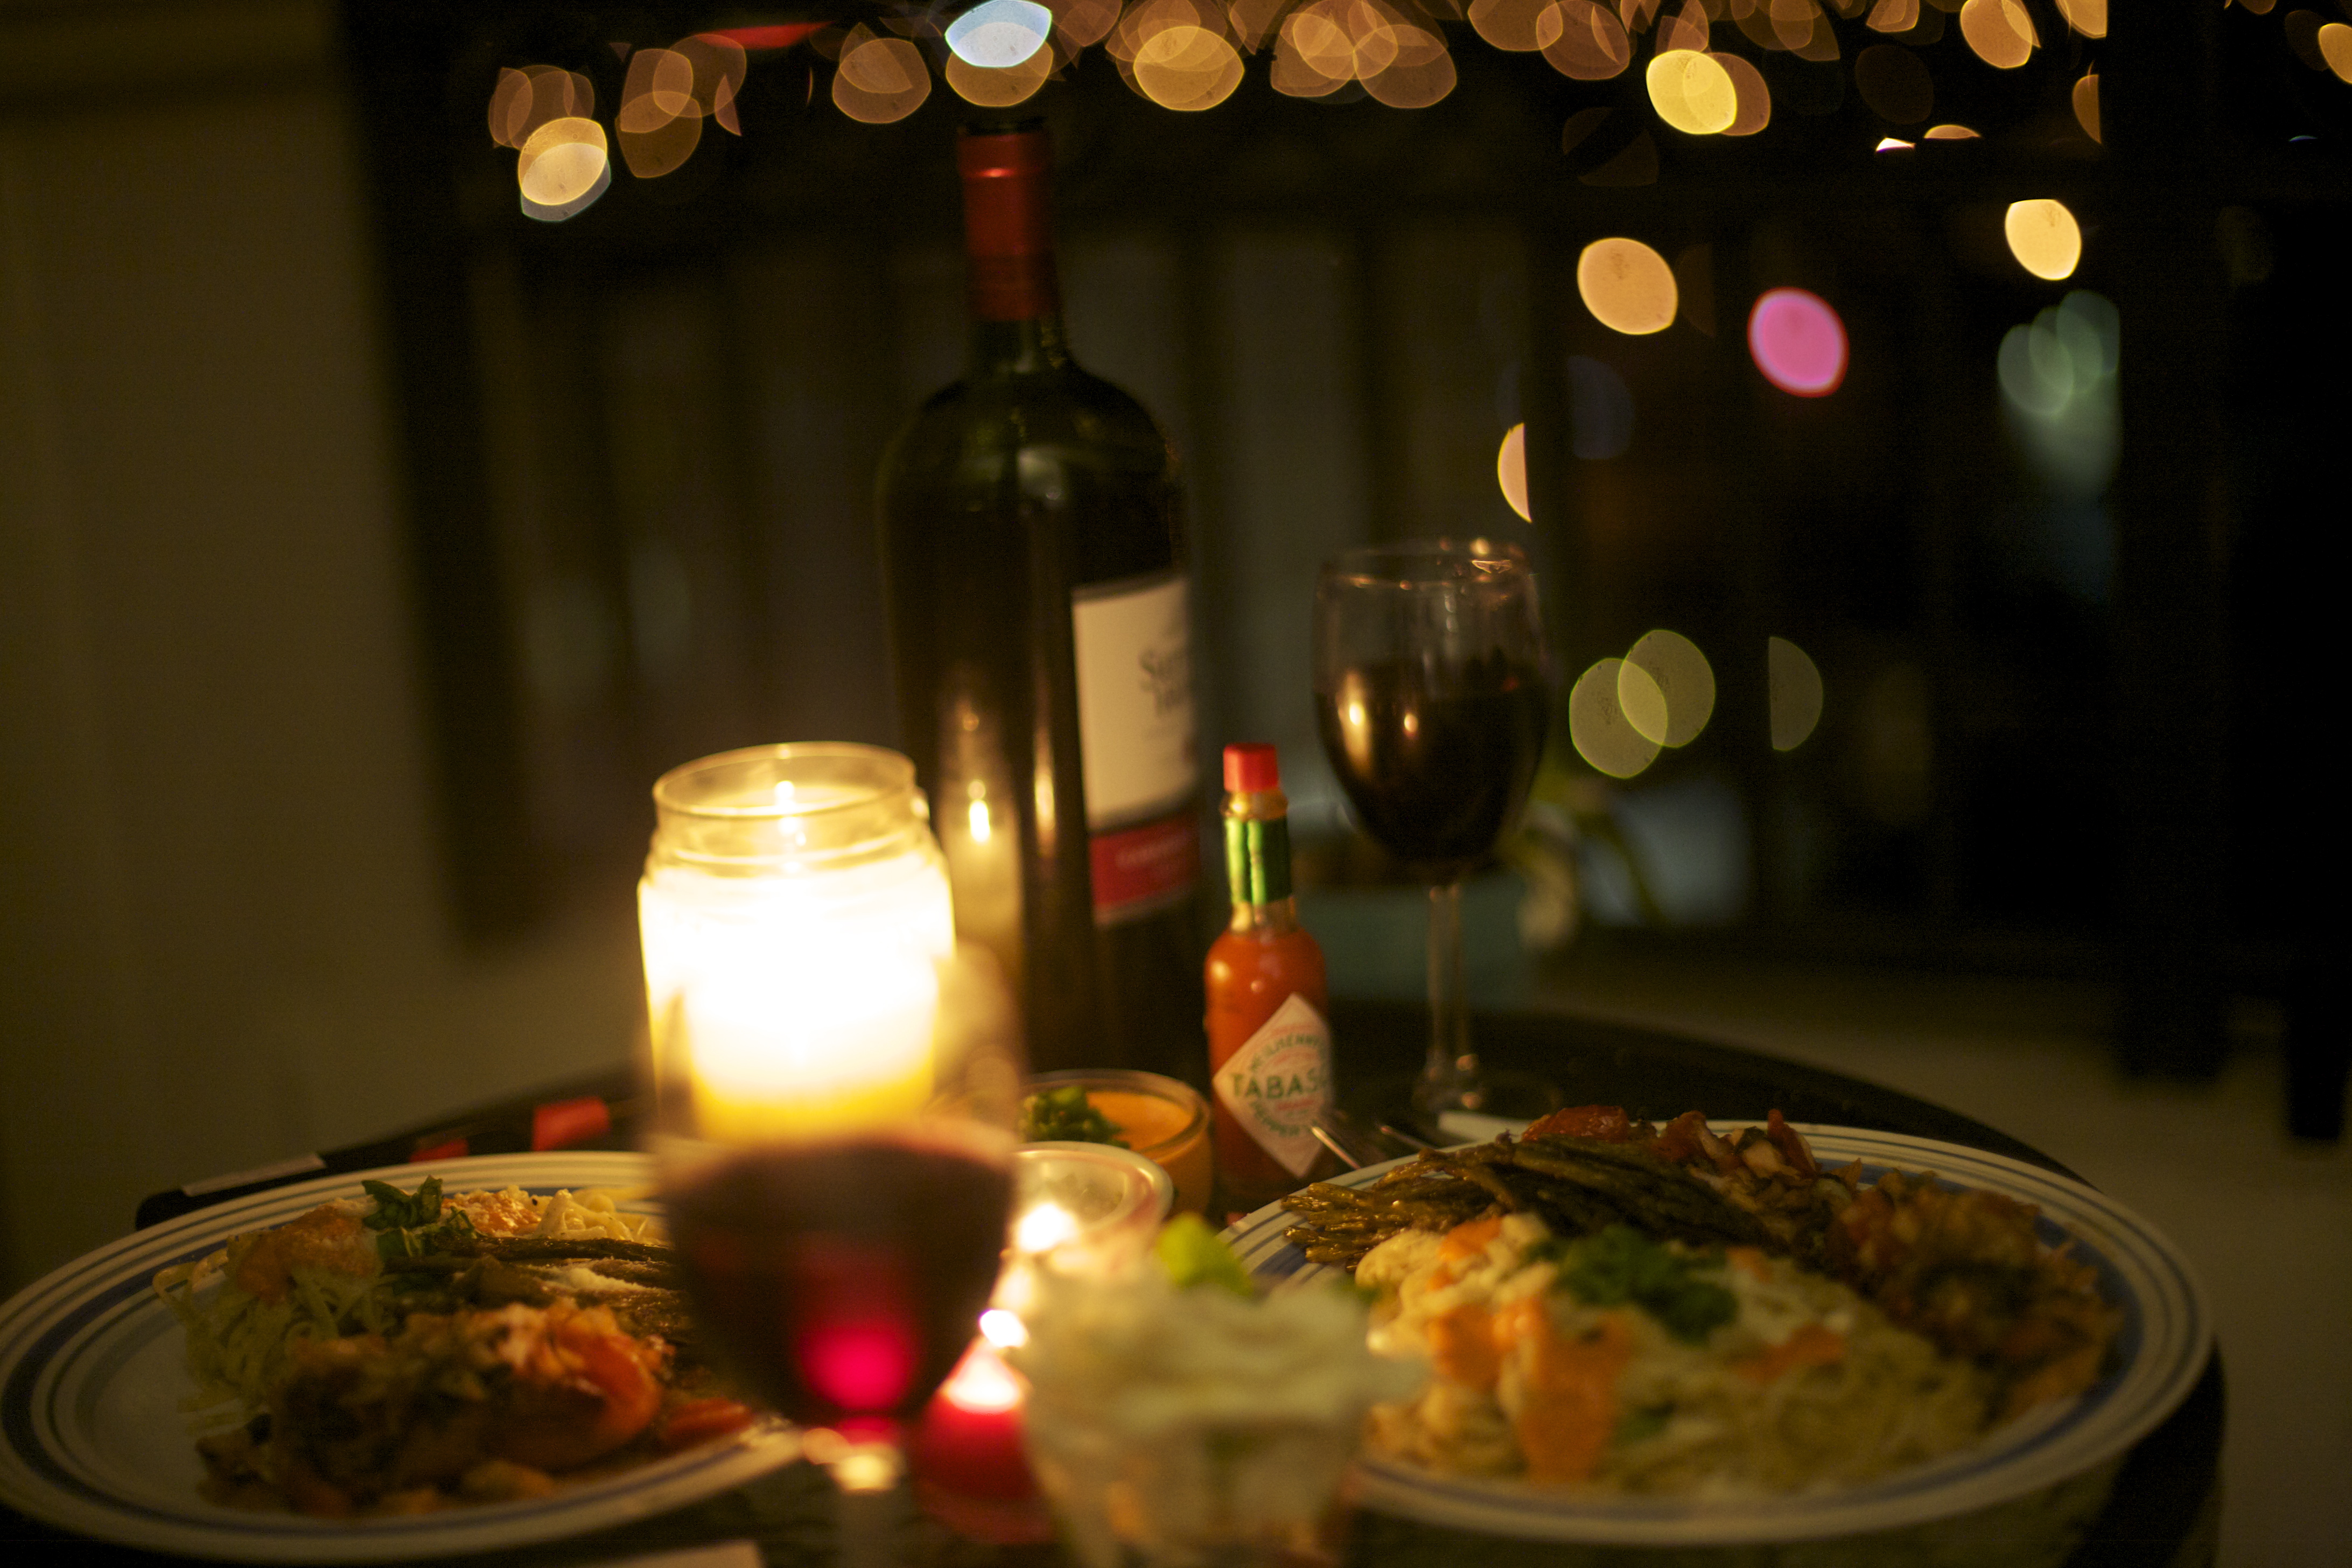 Romantic Dinner At Home - HD Photos Gallery